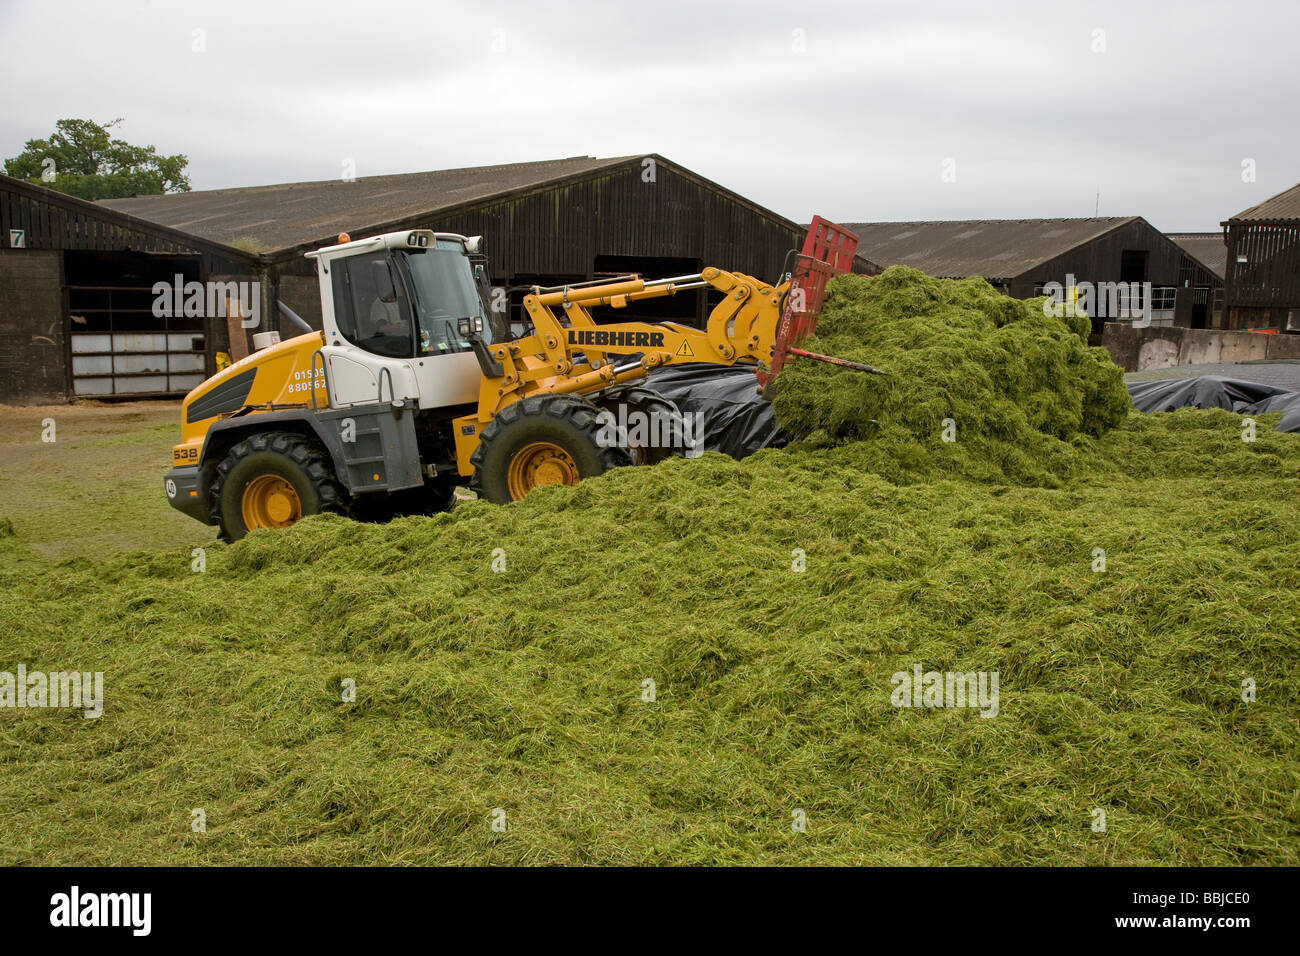 Loader working in a silage clamp - Stock Image